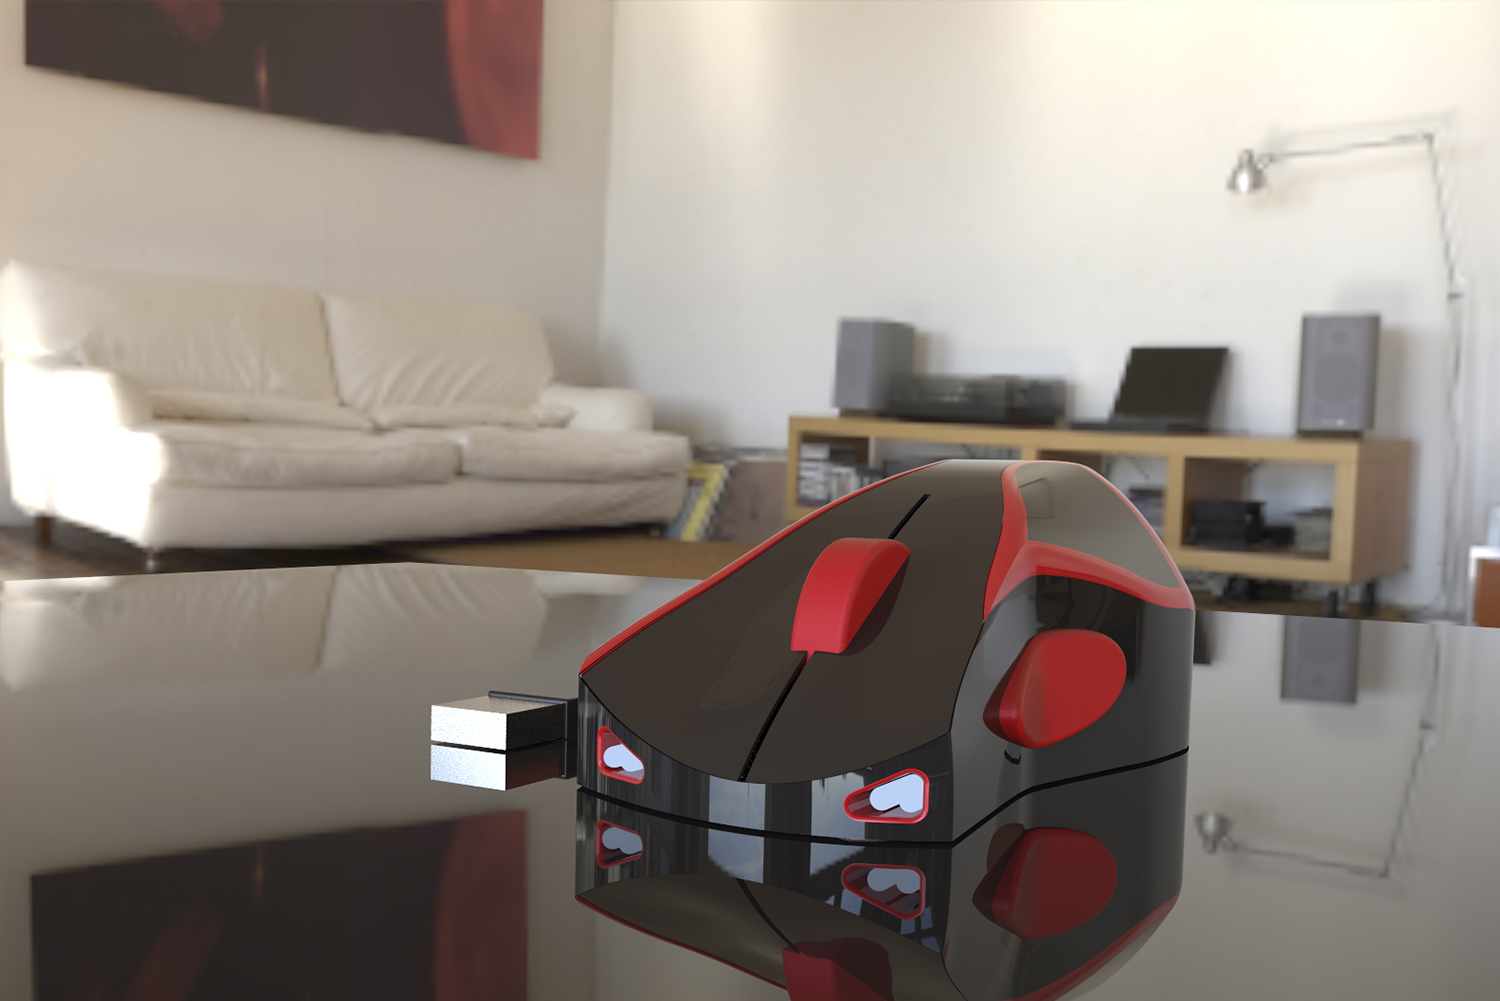 CAD Computer Mouse (2016)